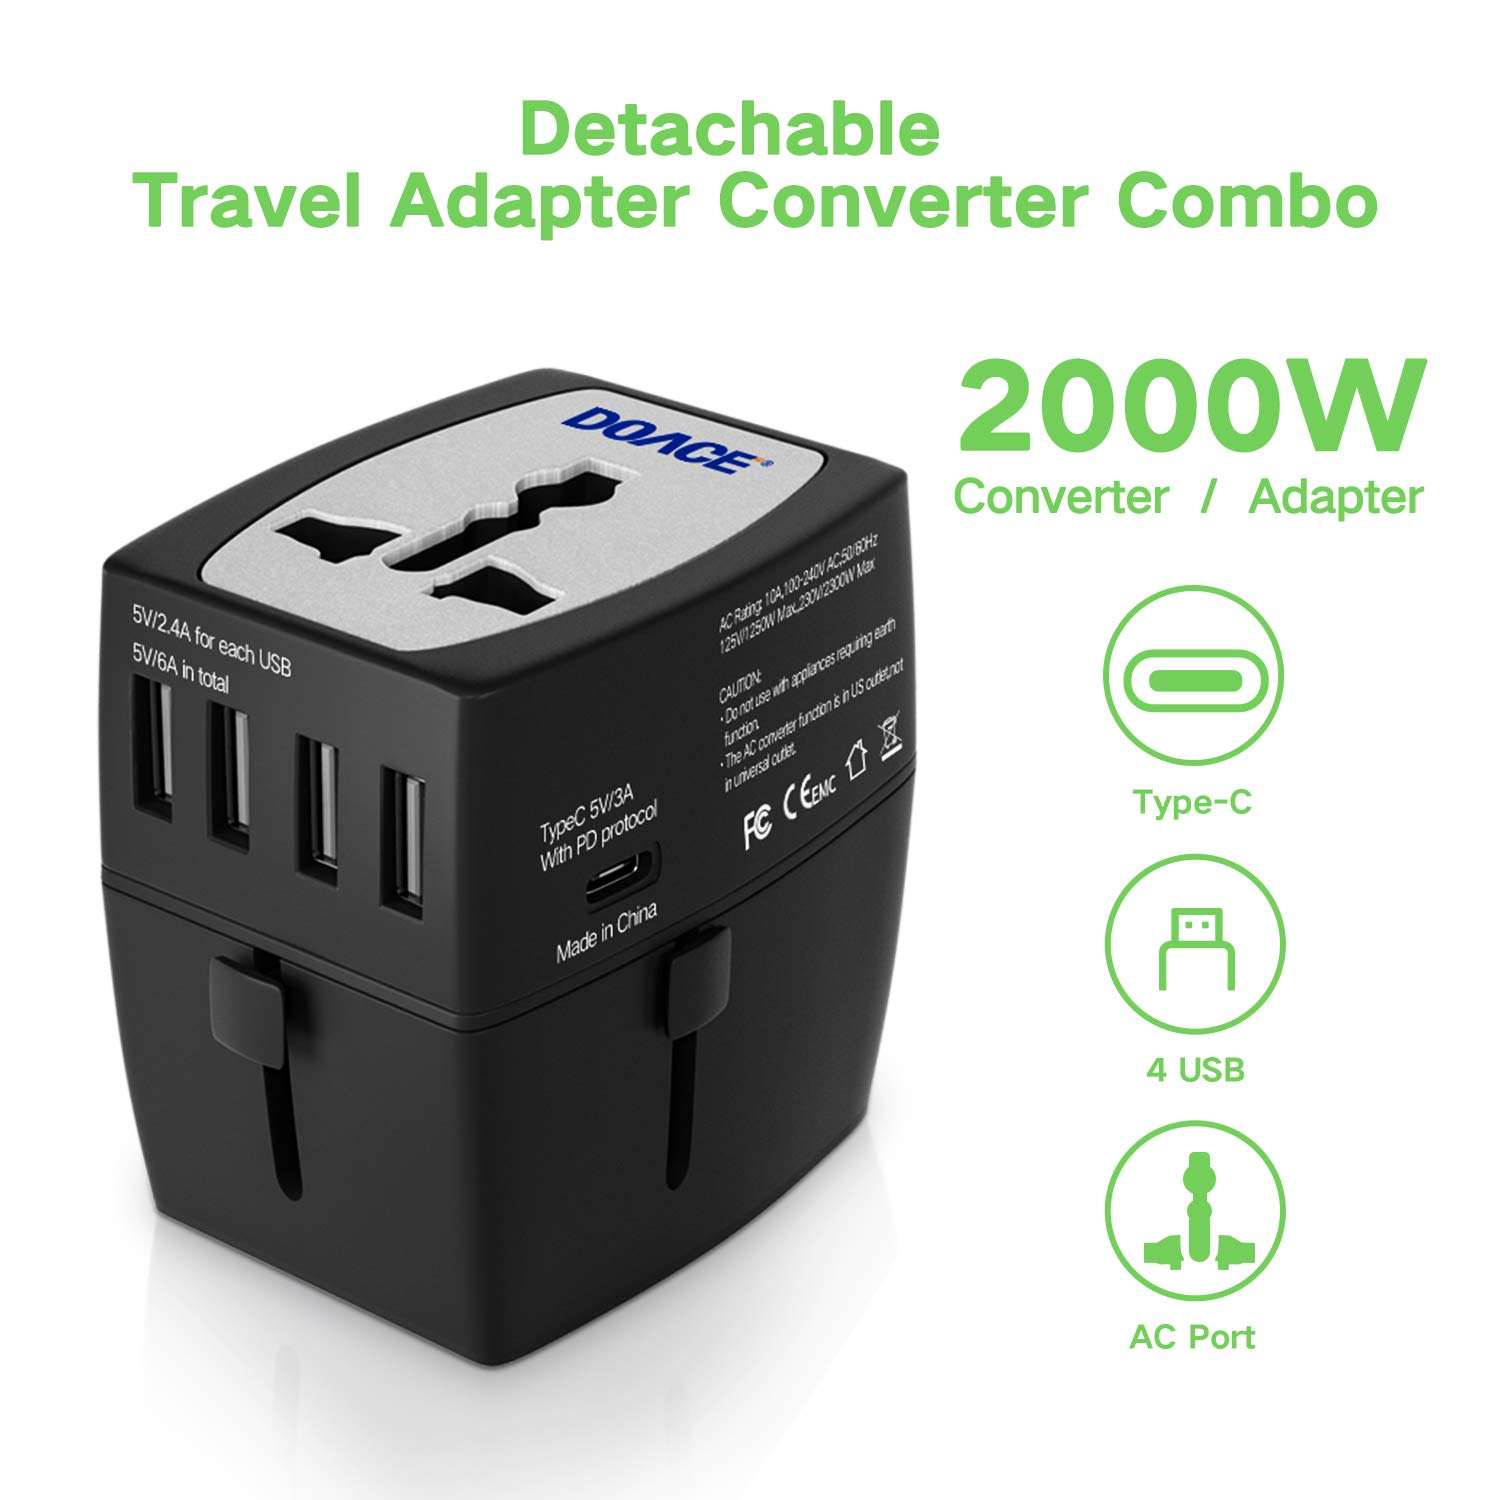 2019 Upgraded 2000W Travel Voltage Converter Step Down 220V to 110V, Travel Power Converters Adapter Combo 10A All in One UK/AU/US/EU with 4-USB Port/Type C PD Charger for Hair Dryer Steam Iron Laptop